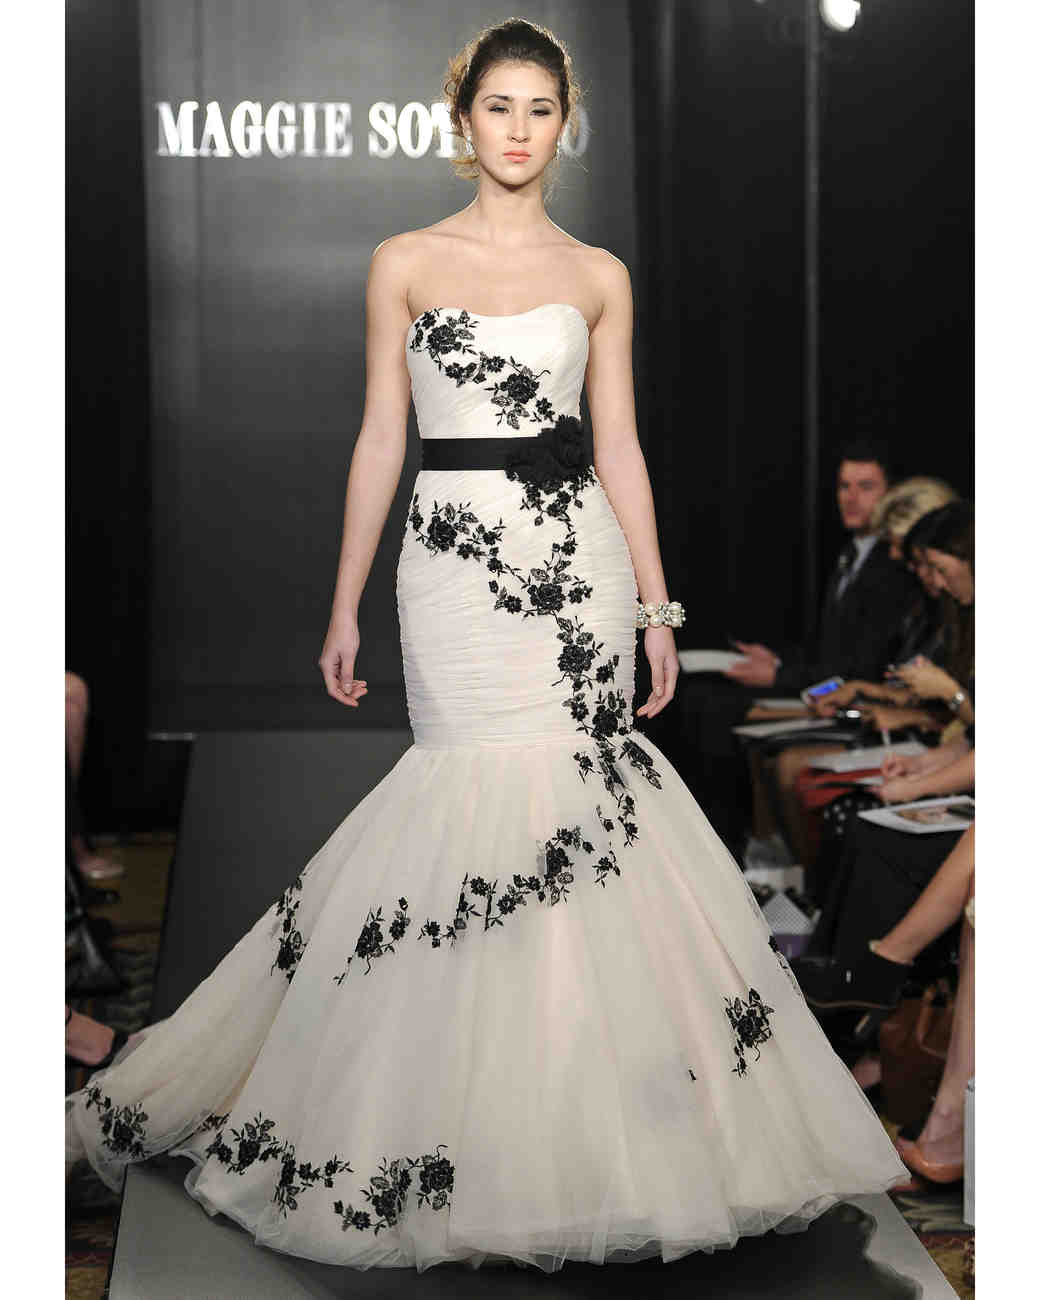 Black and white wedding dresses spring 2013 bridal fashion week maggie sottero mightylinksfo